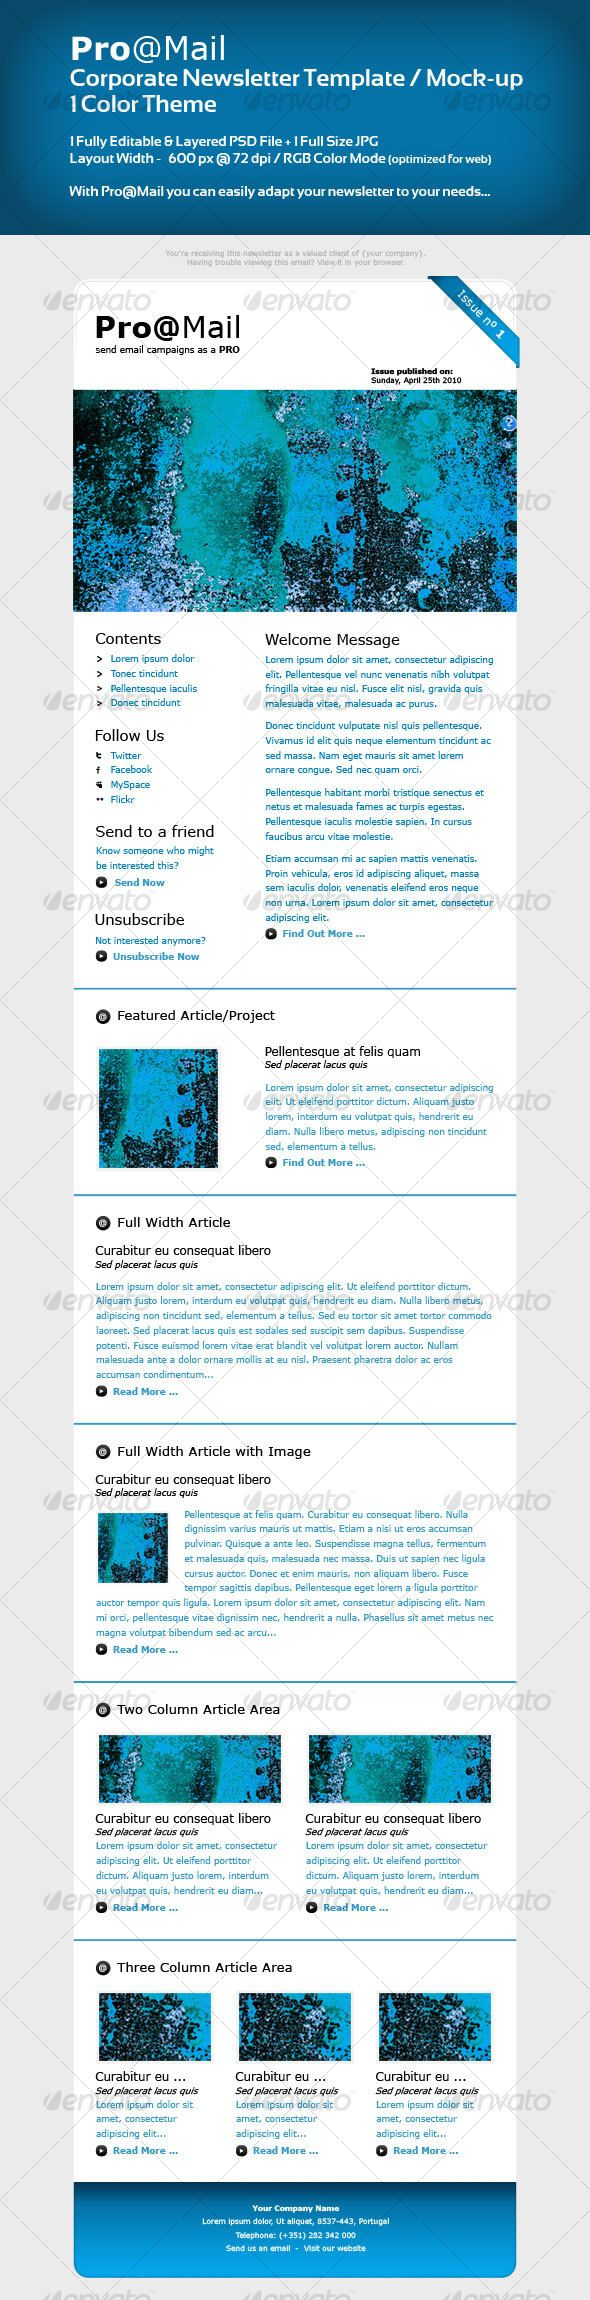 Corporate Newsletter Template / Mock-up | Newsletter templates ...